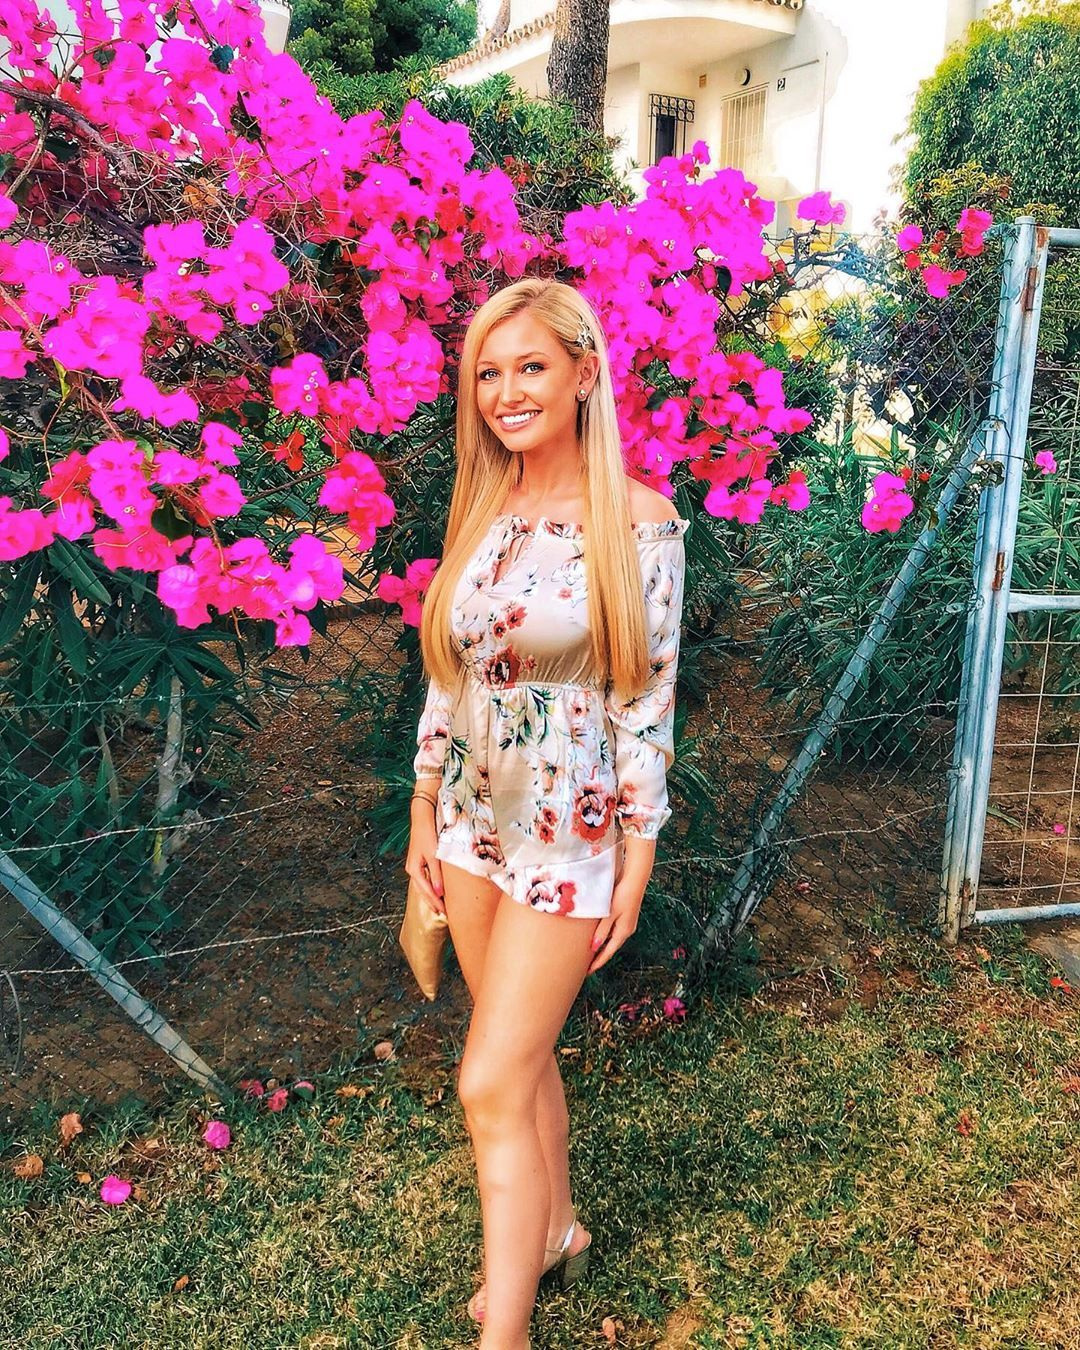 Image may contain: Love Island 2019 Instagrams, Amy Hart, Instagram, Love Island, 2019, contestant, followers, Islander, line-up, cast, Plant, Dress, Shoe, Footwear, Evening Dress, Fashion, Gown, Robe, Child, Woman, Kid, Female, Teen, Blonde, Girl, Person, Human, Clothing, Apparel